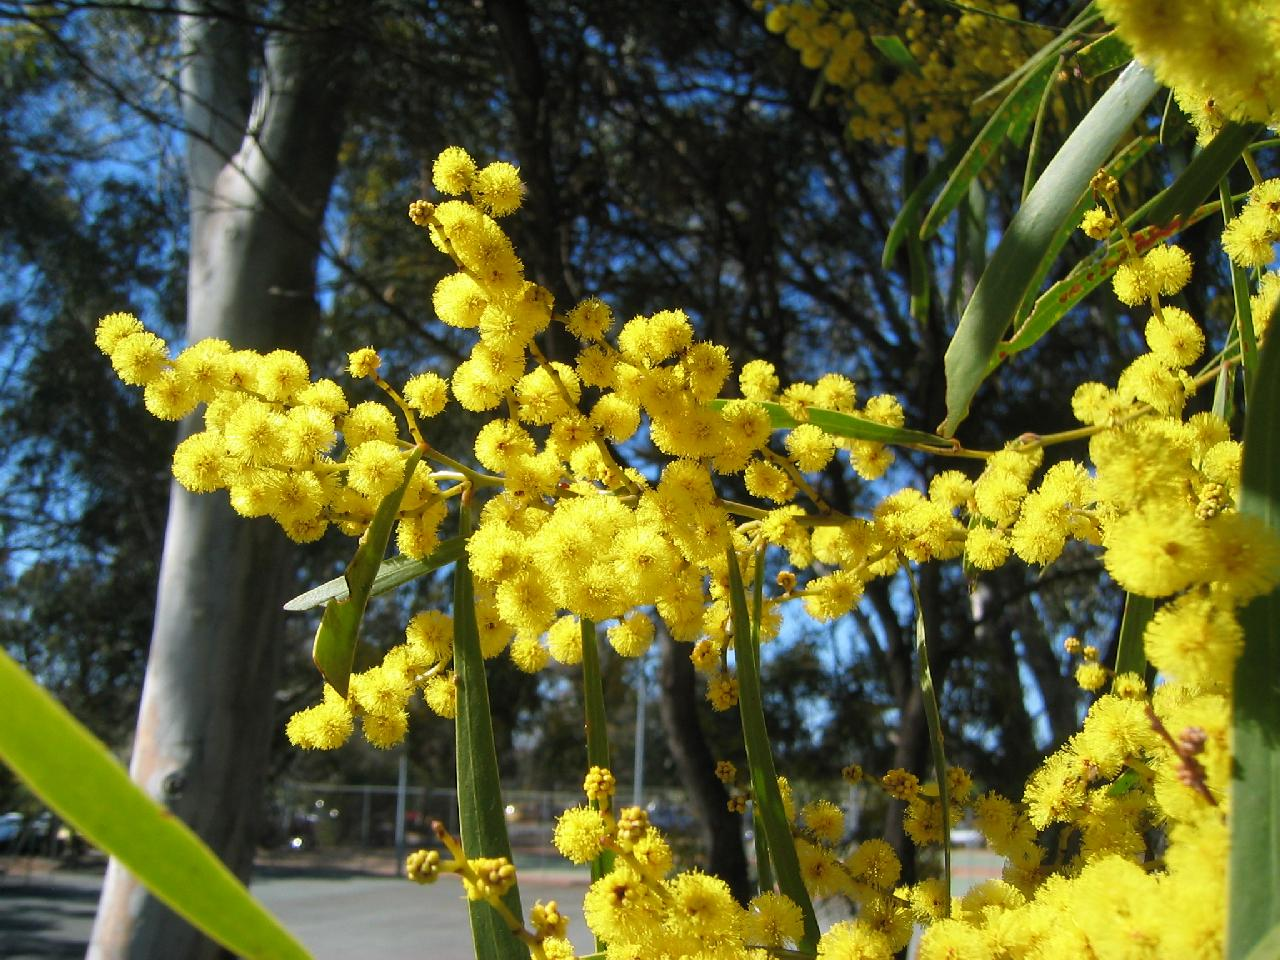 https://upload.wikimedia.org/wikipedia/commons/a/ab/Australian_Golden_Wattle_Blossums.jpg